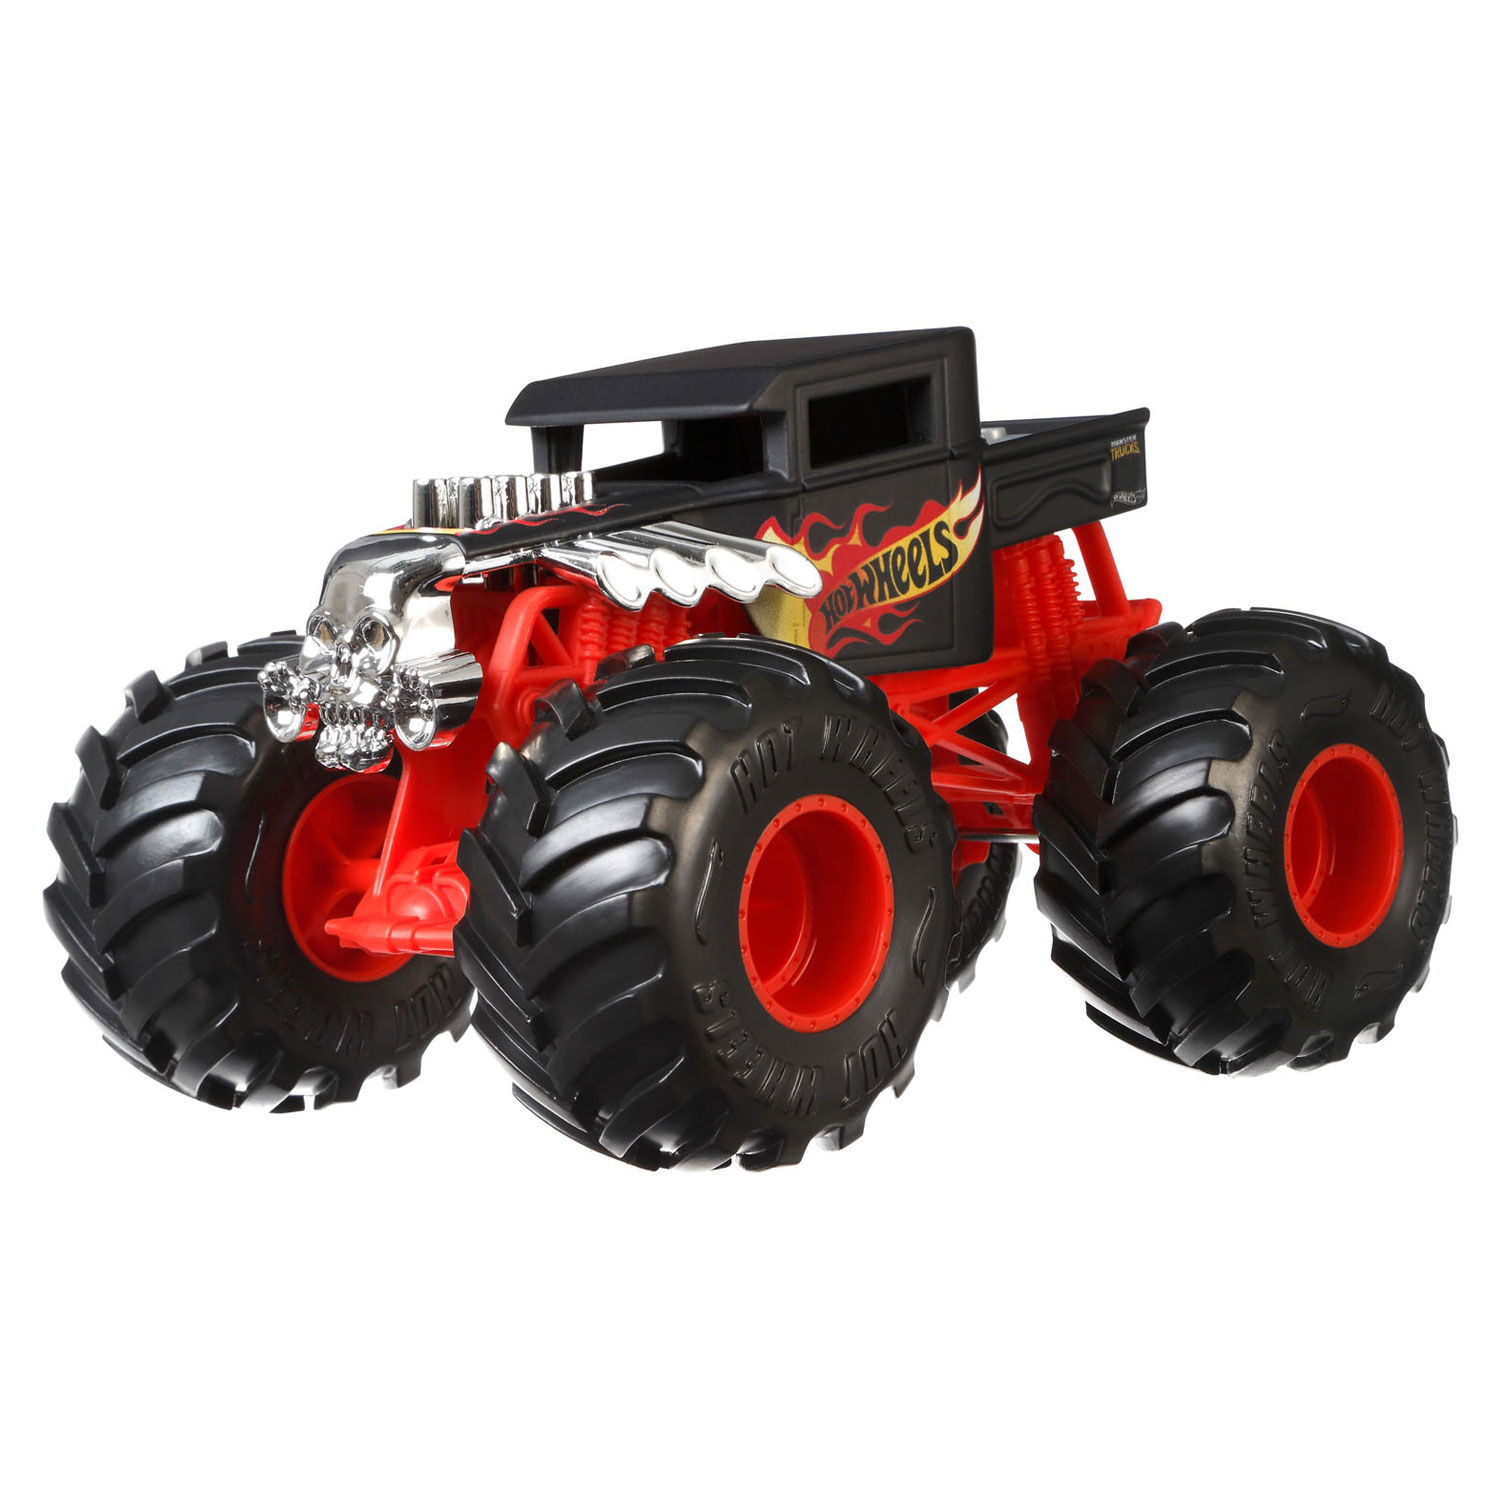 Hot Wheels Monster Truck - Bone Shaker